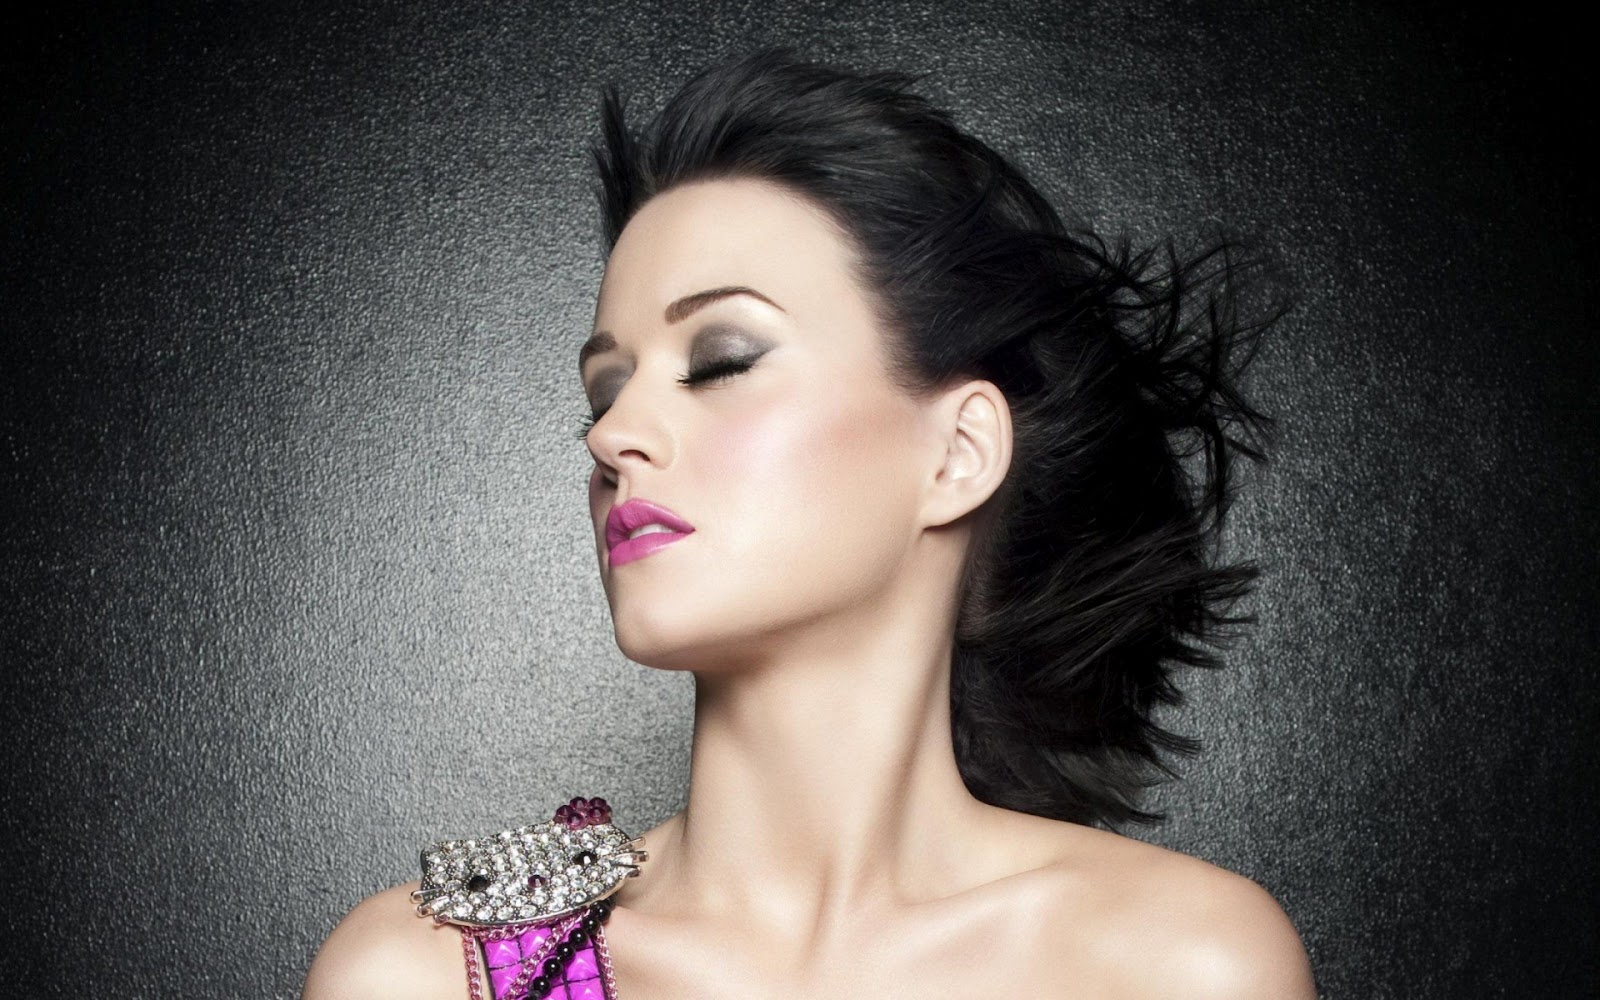 Katy Perry: Katy Perry Is My Favorite Fashion Makeup Muse